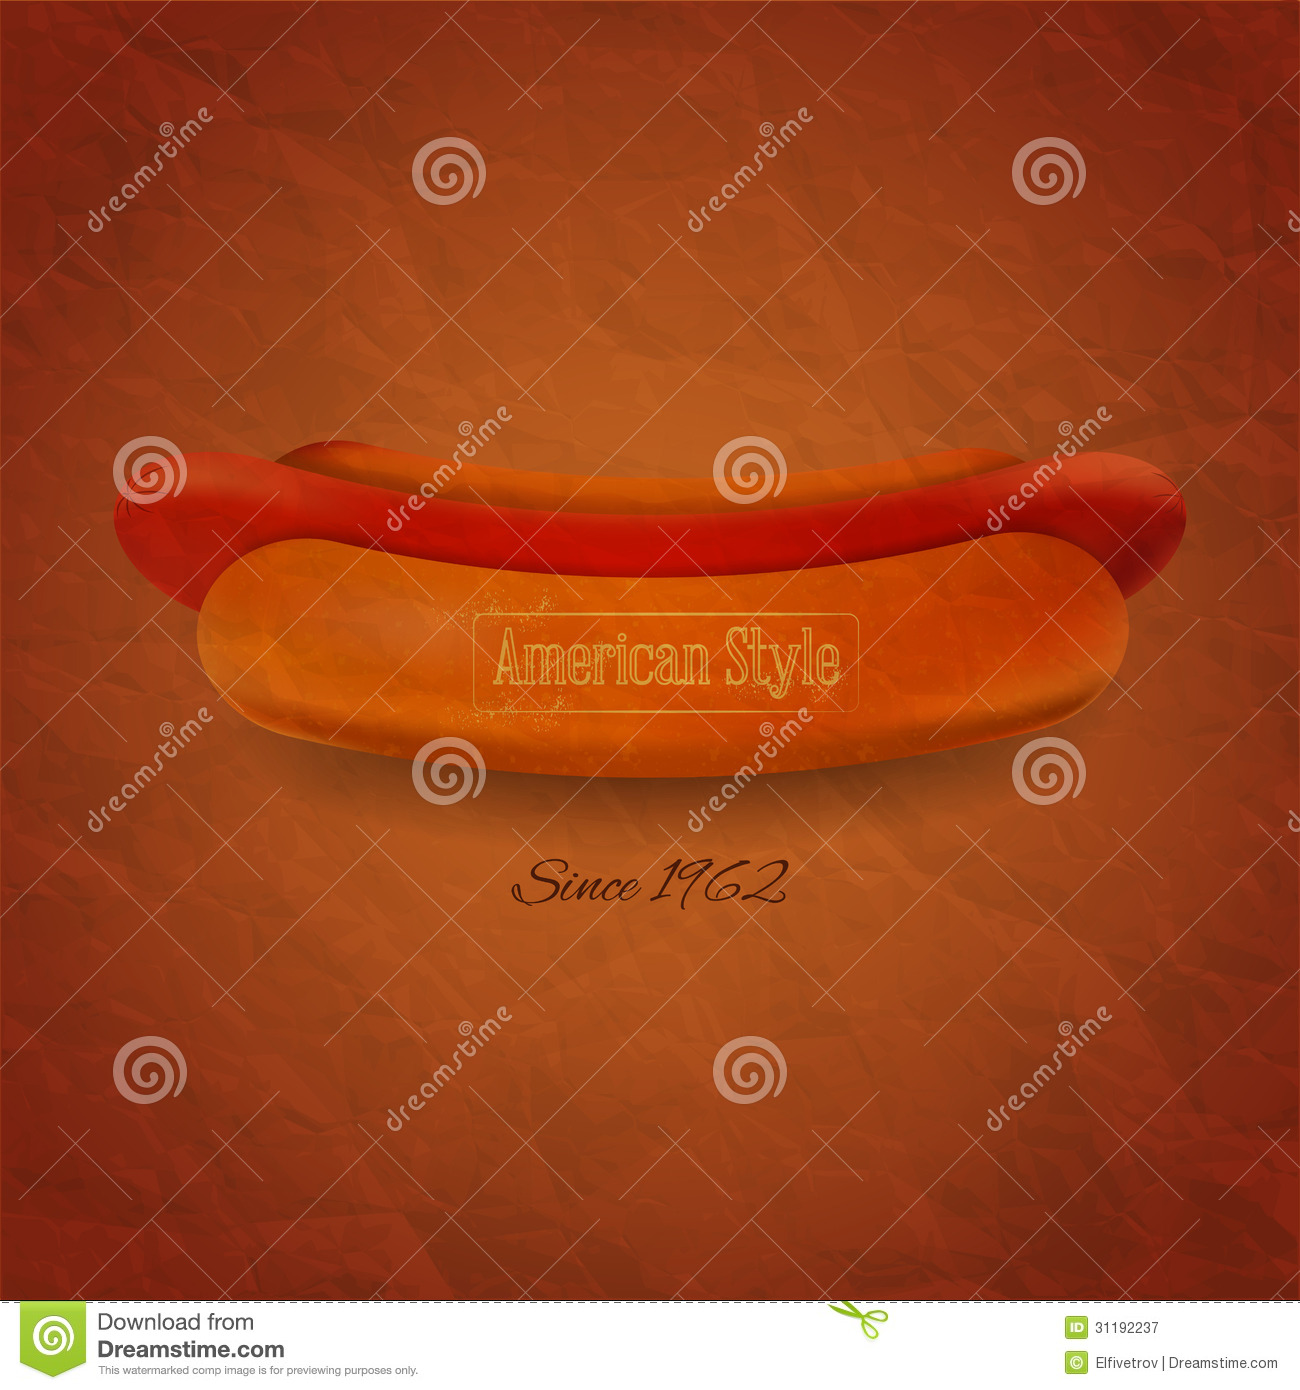 hot dogs essay Informative essay sample what ingredients can be found inside of a hotdog published on our site was submitted by a student and should not be viewed as an example of work of professional custom writer of our company we provide this material for educational purposes only and it should not be copied or used in any other way than referencing.